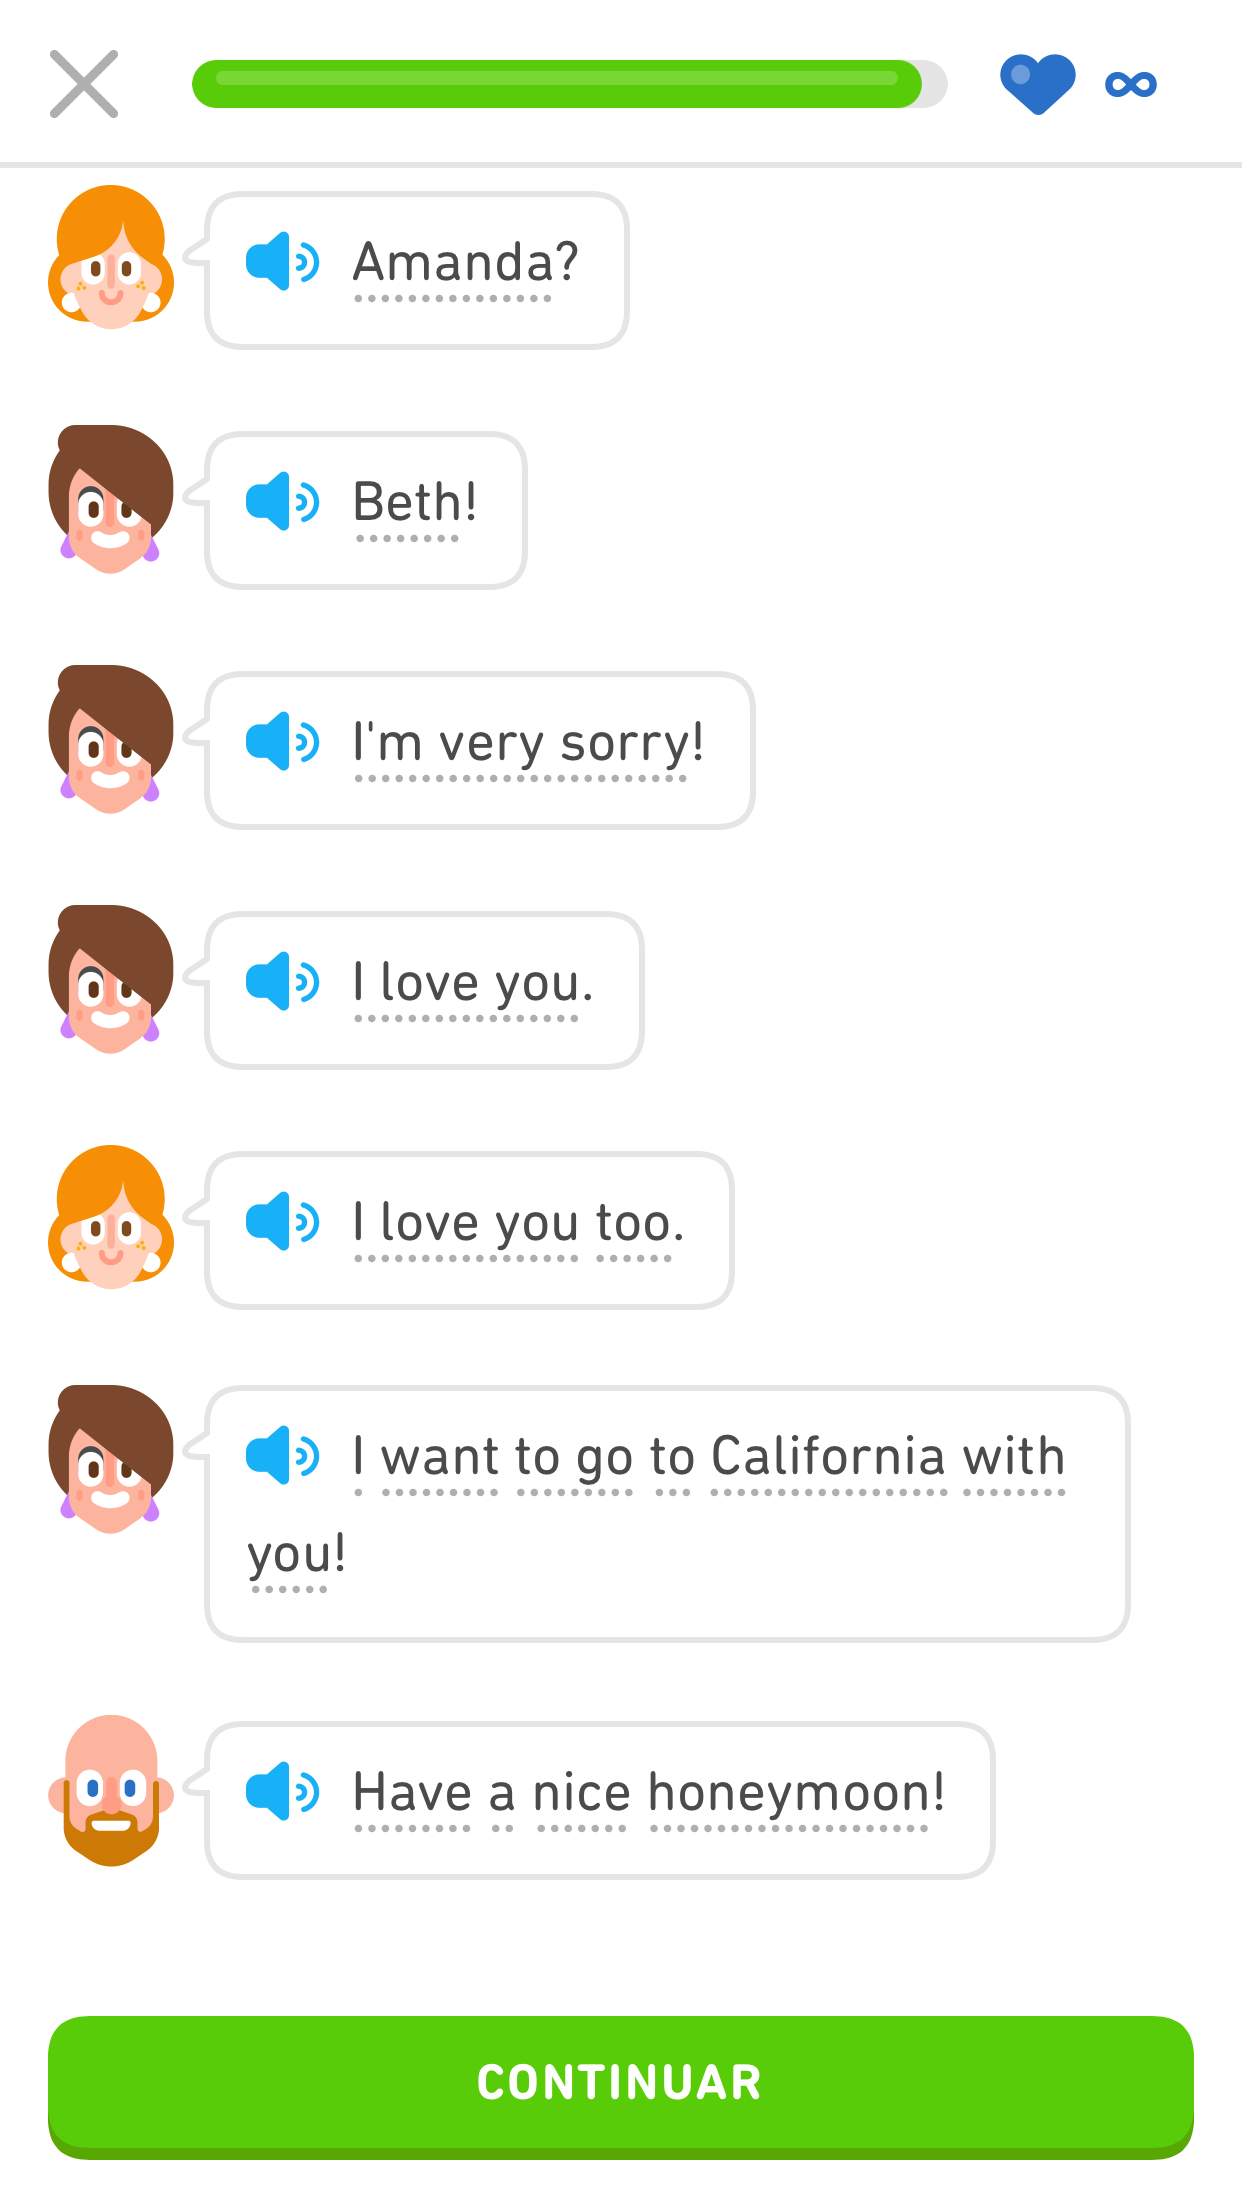 """Screenshot of a dialog from later in the same Duolingo Story. The dialog is between the woman from the cab and a woman standing at the airport. The woman from the cab says, """"Amanda?"""" The woman at the airport says, """"Beth! I'm very sorry! I love you."""" The woman from the cab says, """"I love you too."""" The woman at the airport says, """"I want to go to California with you!"""" The taxi driver says, """"Have a nice honeymoon!"""""""